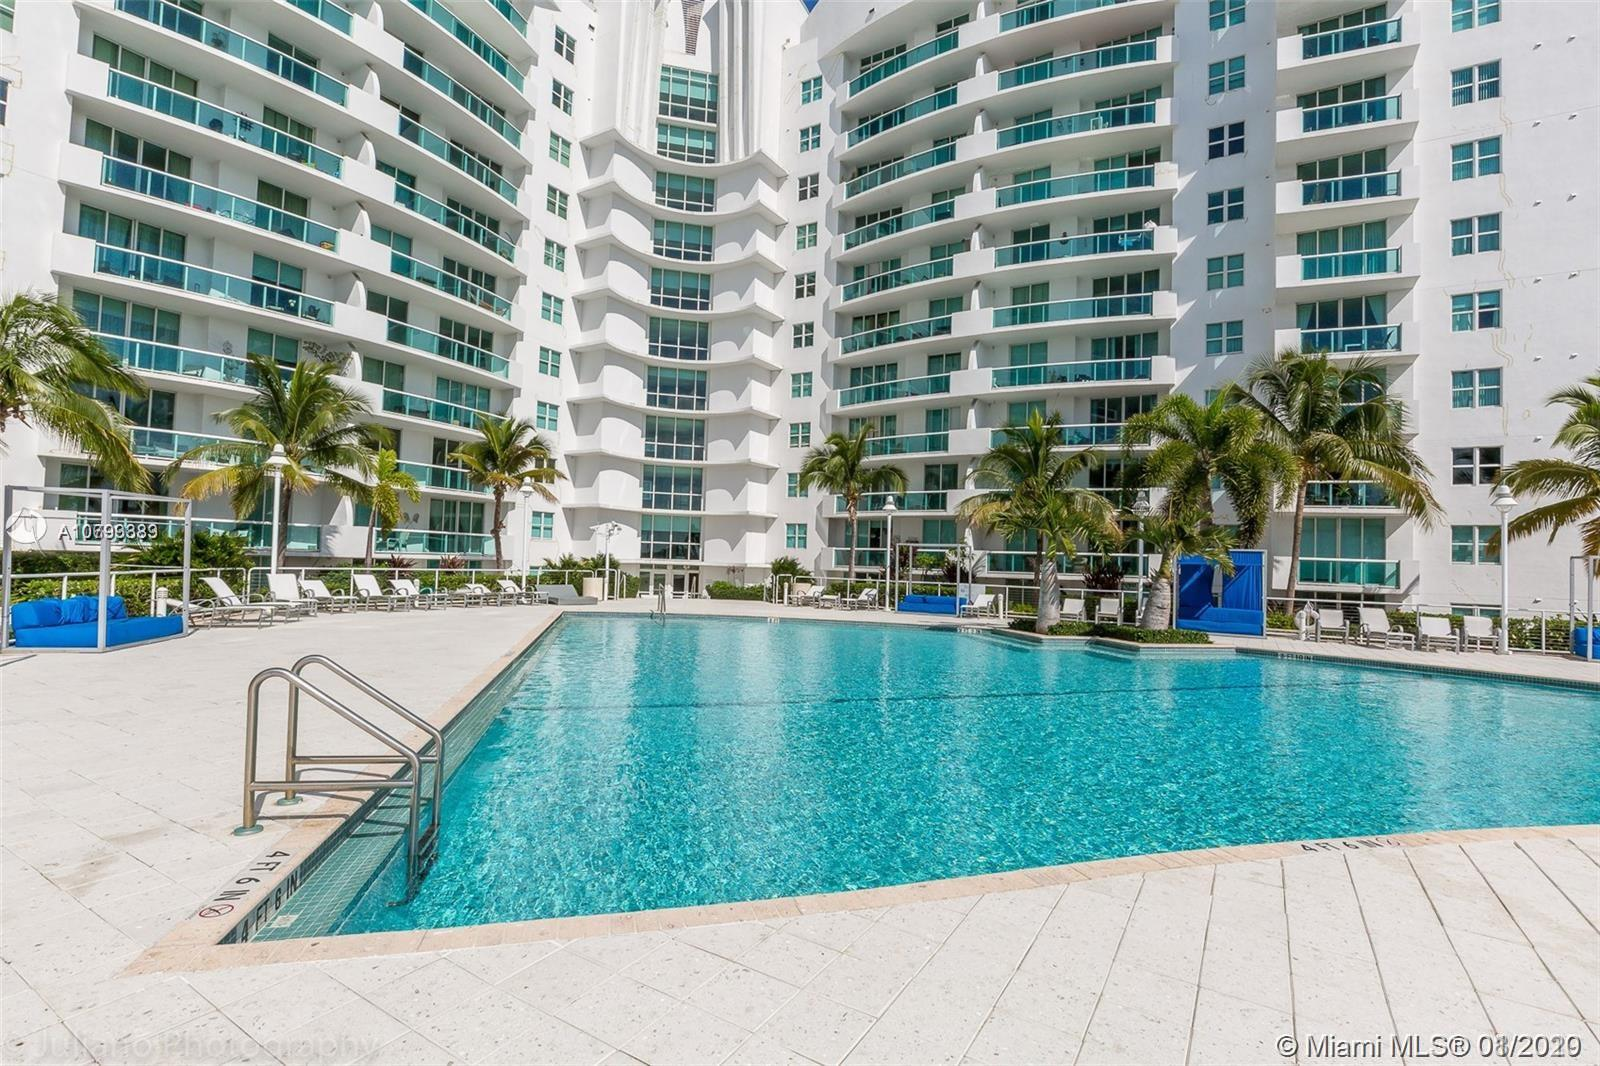 7910  Harbor Island Dr. #501 B For Sale A10793389, FL